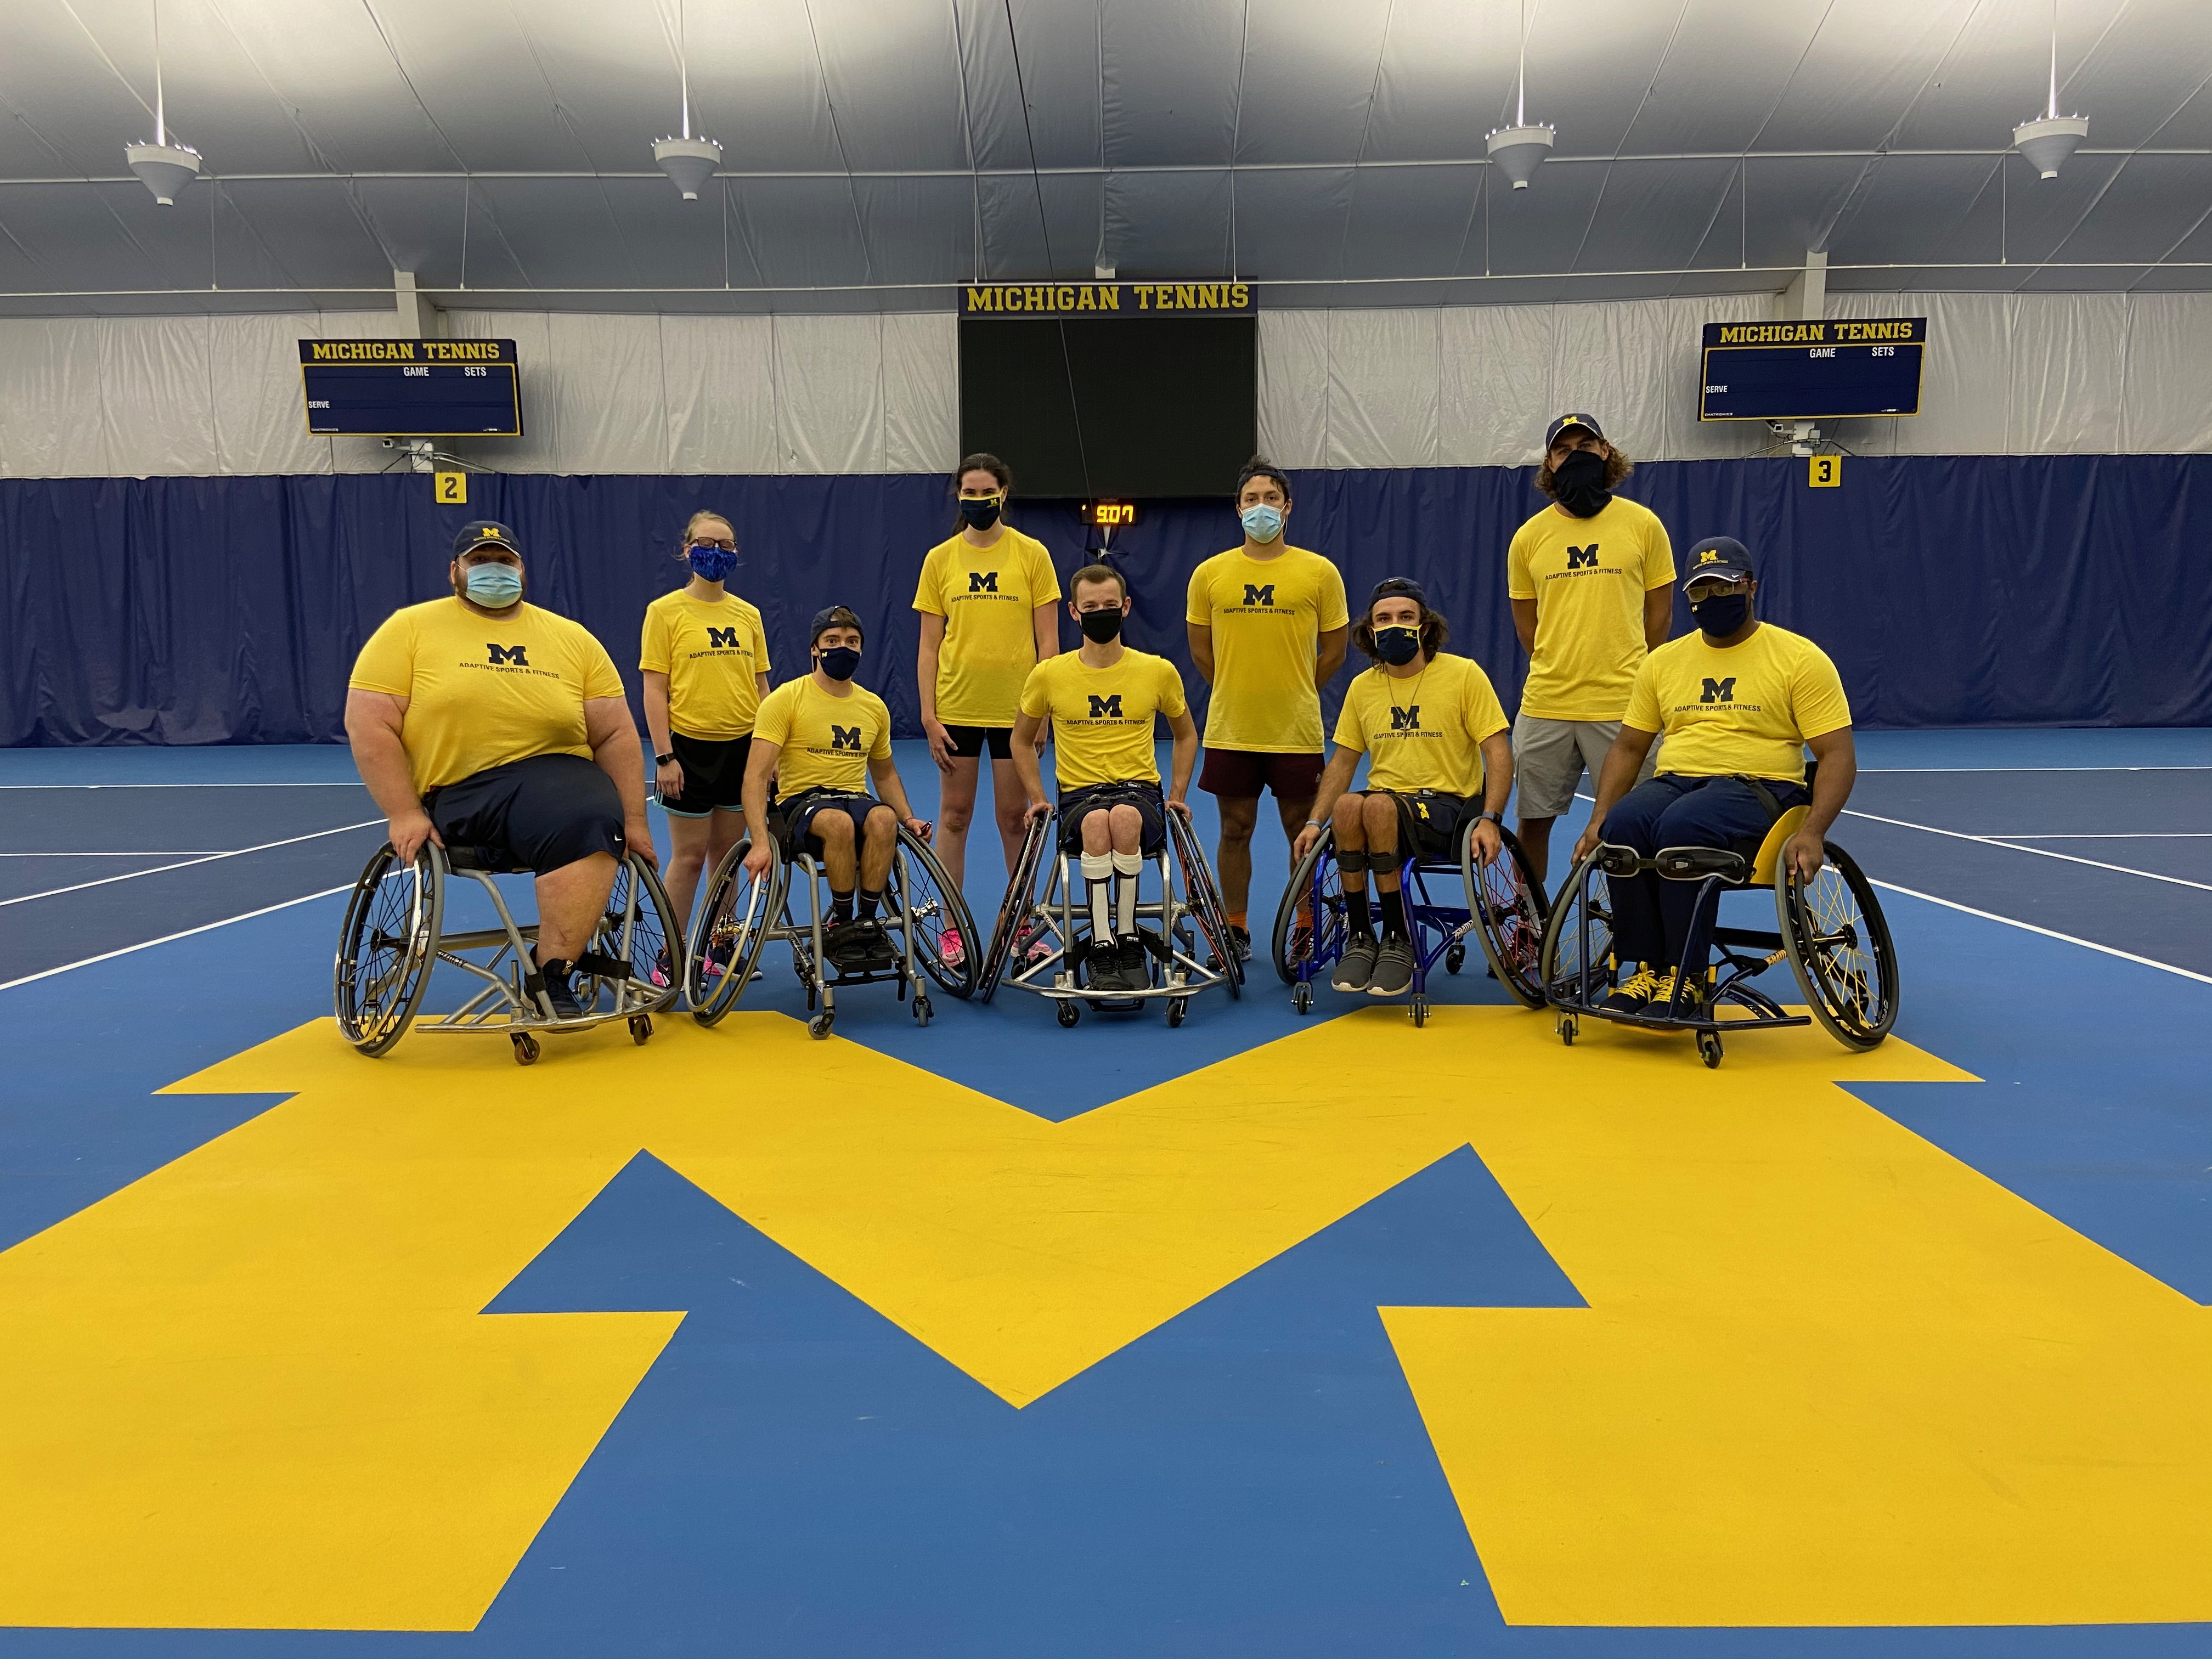 Image of team wearing matching maize program shirts on the tennis court